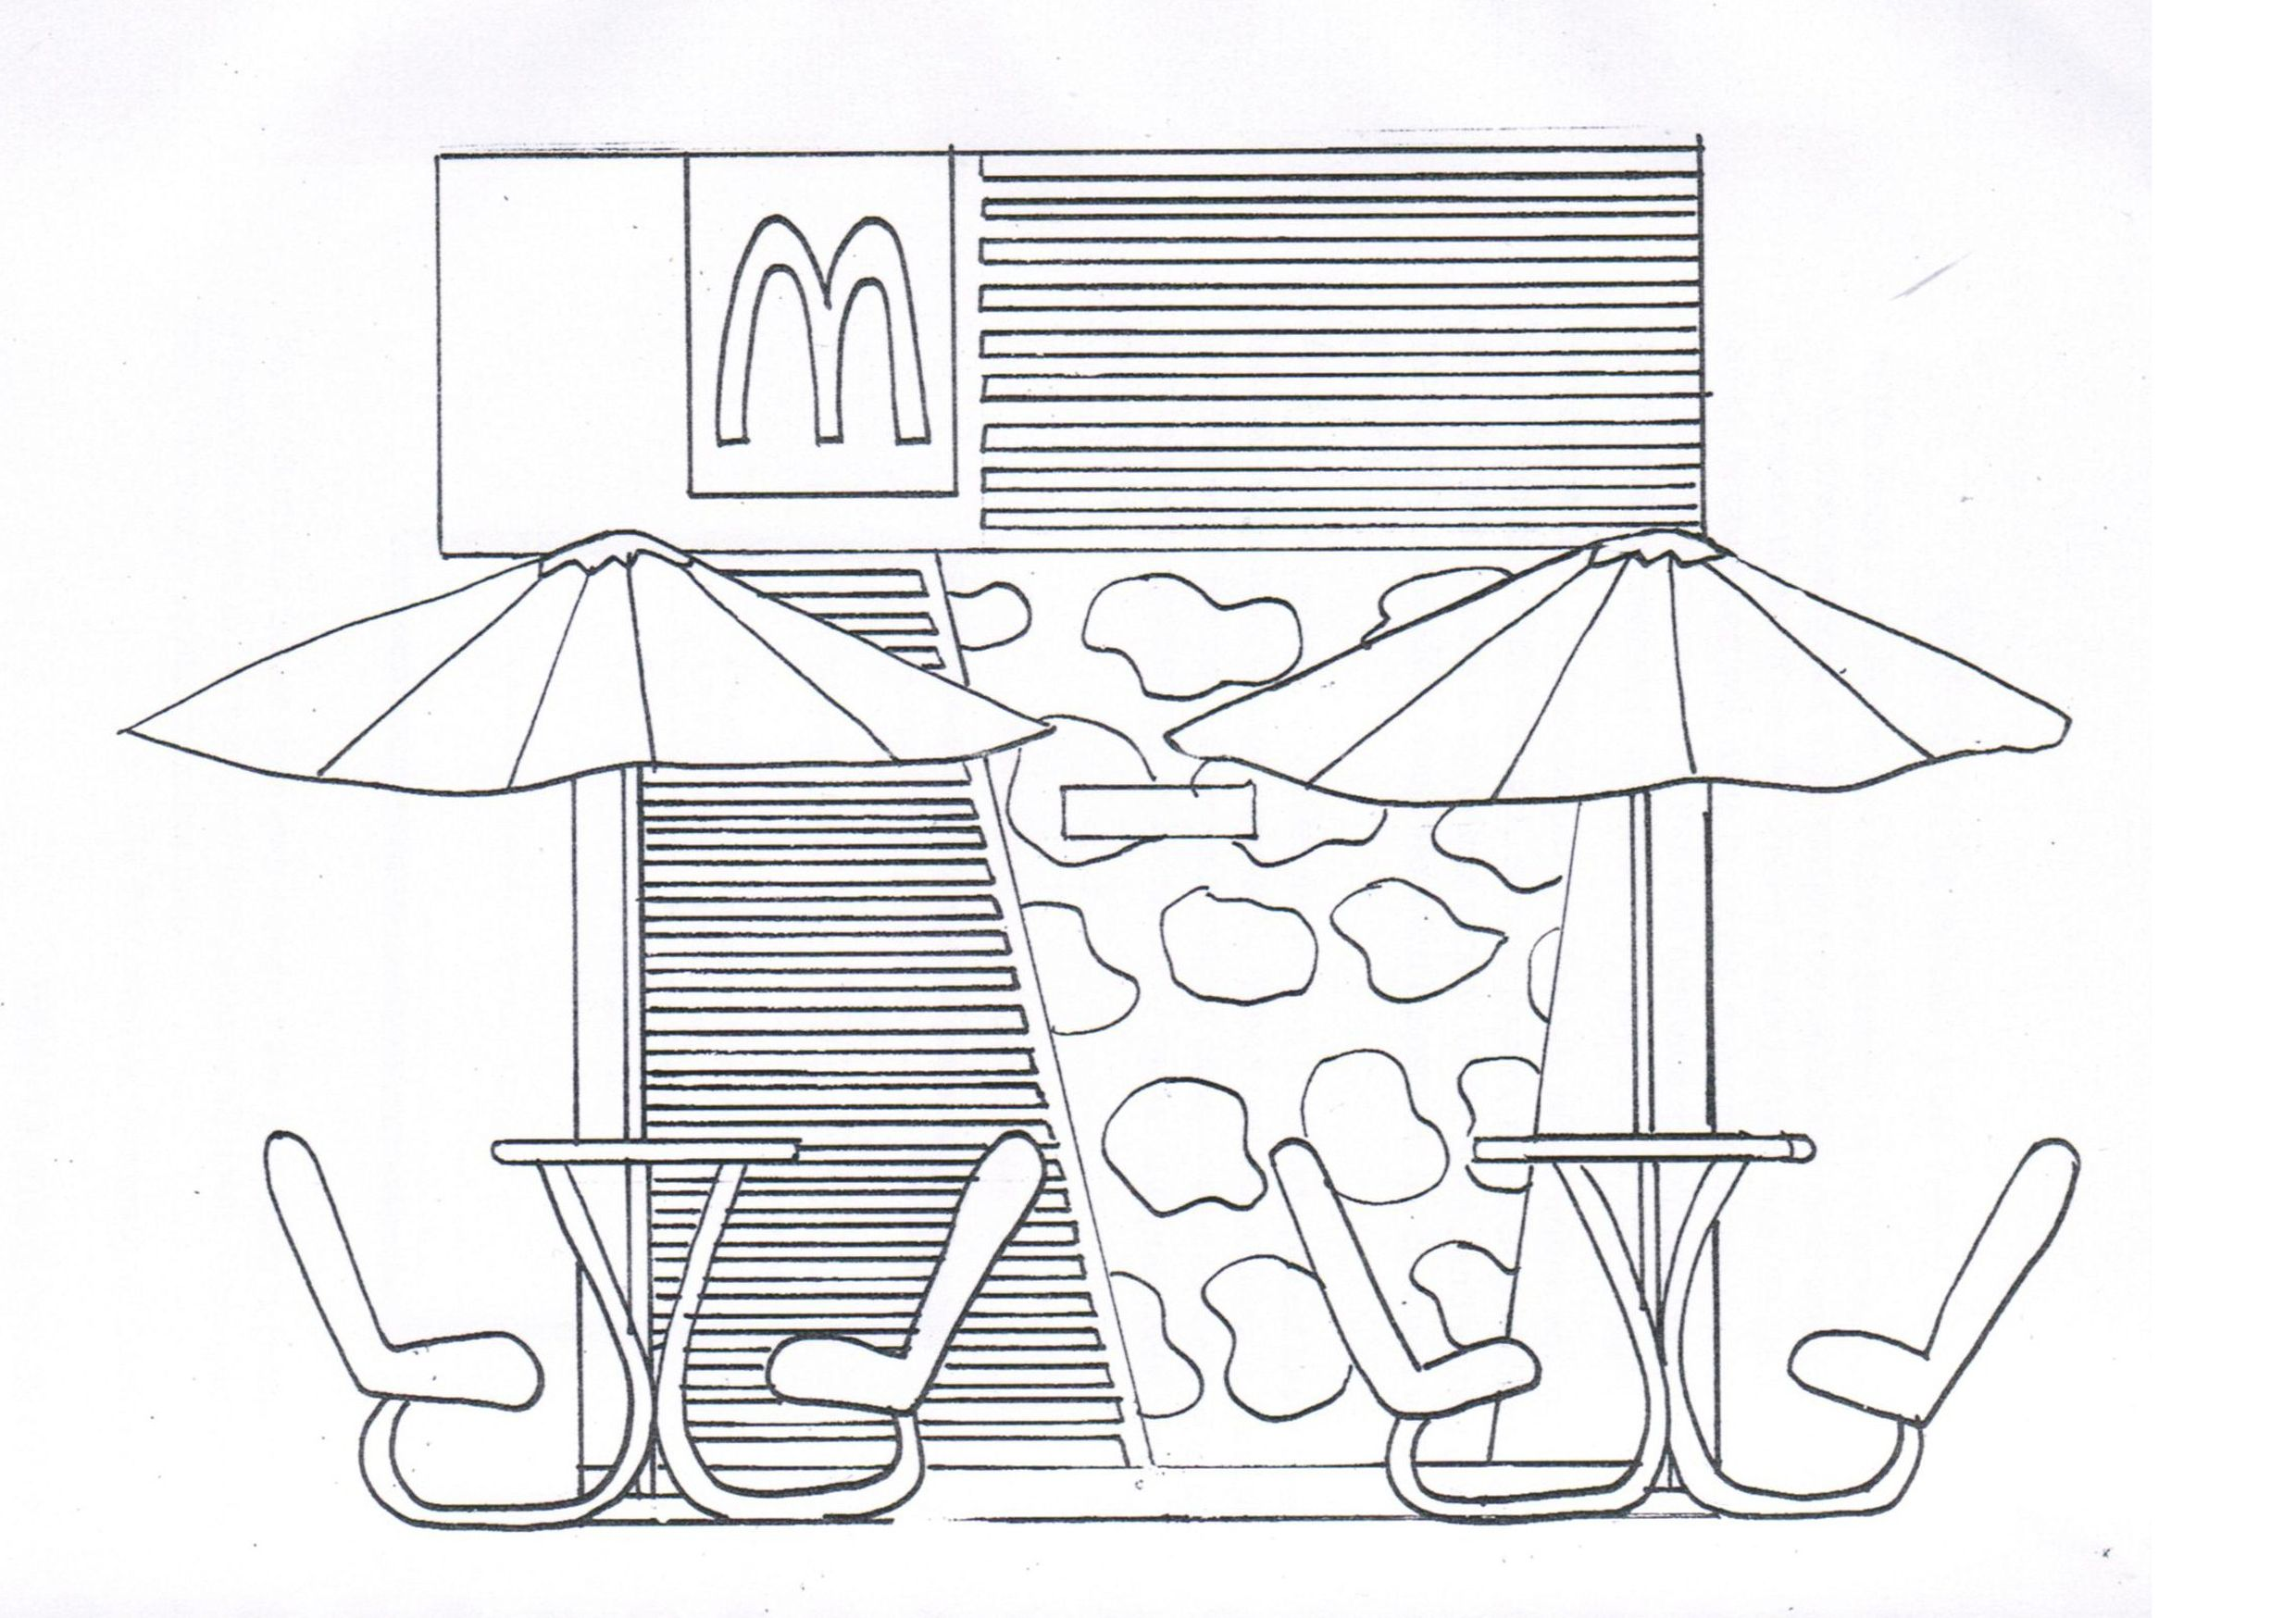 2480x1748 Elevation Of Kiosk (Kowloon Park) Sketch In Design